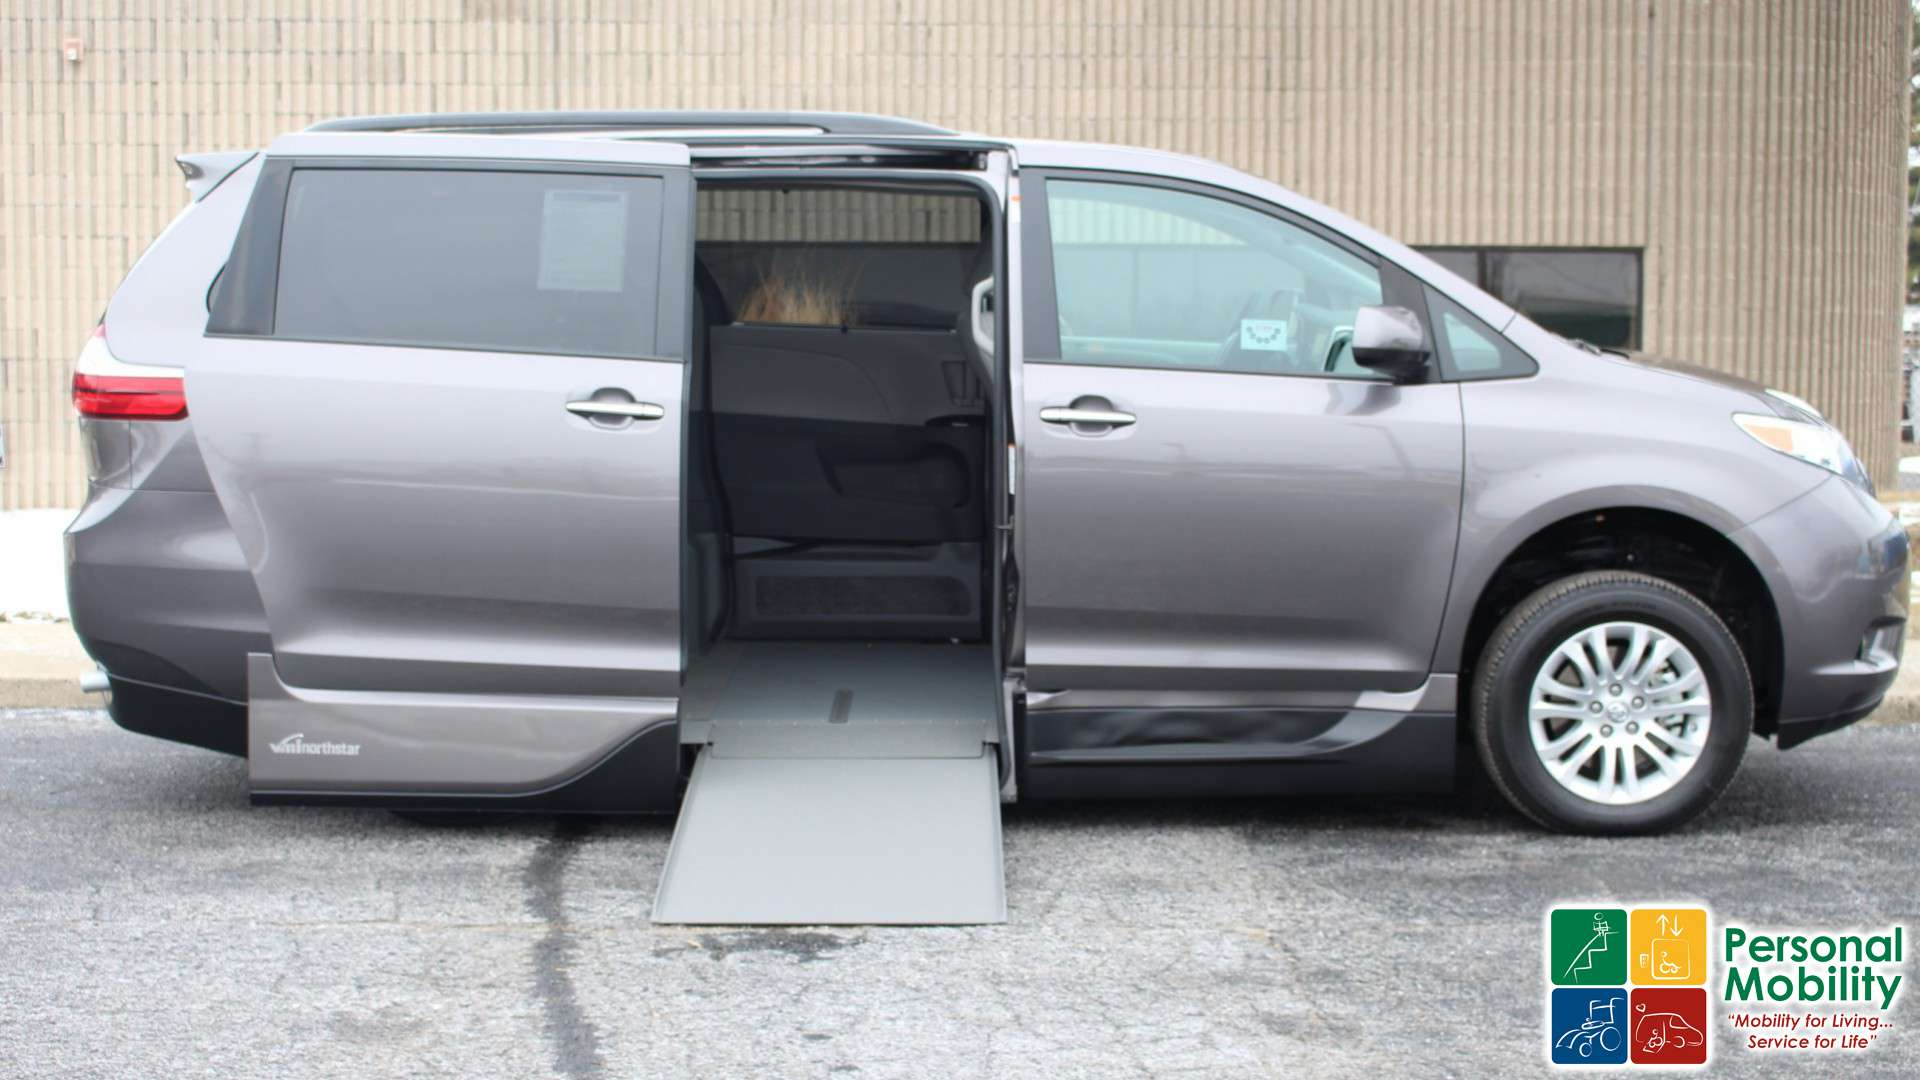 Toyota Sienna 2010-2018 Owners Manual: Unlocking and locking the doors from the outside